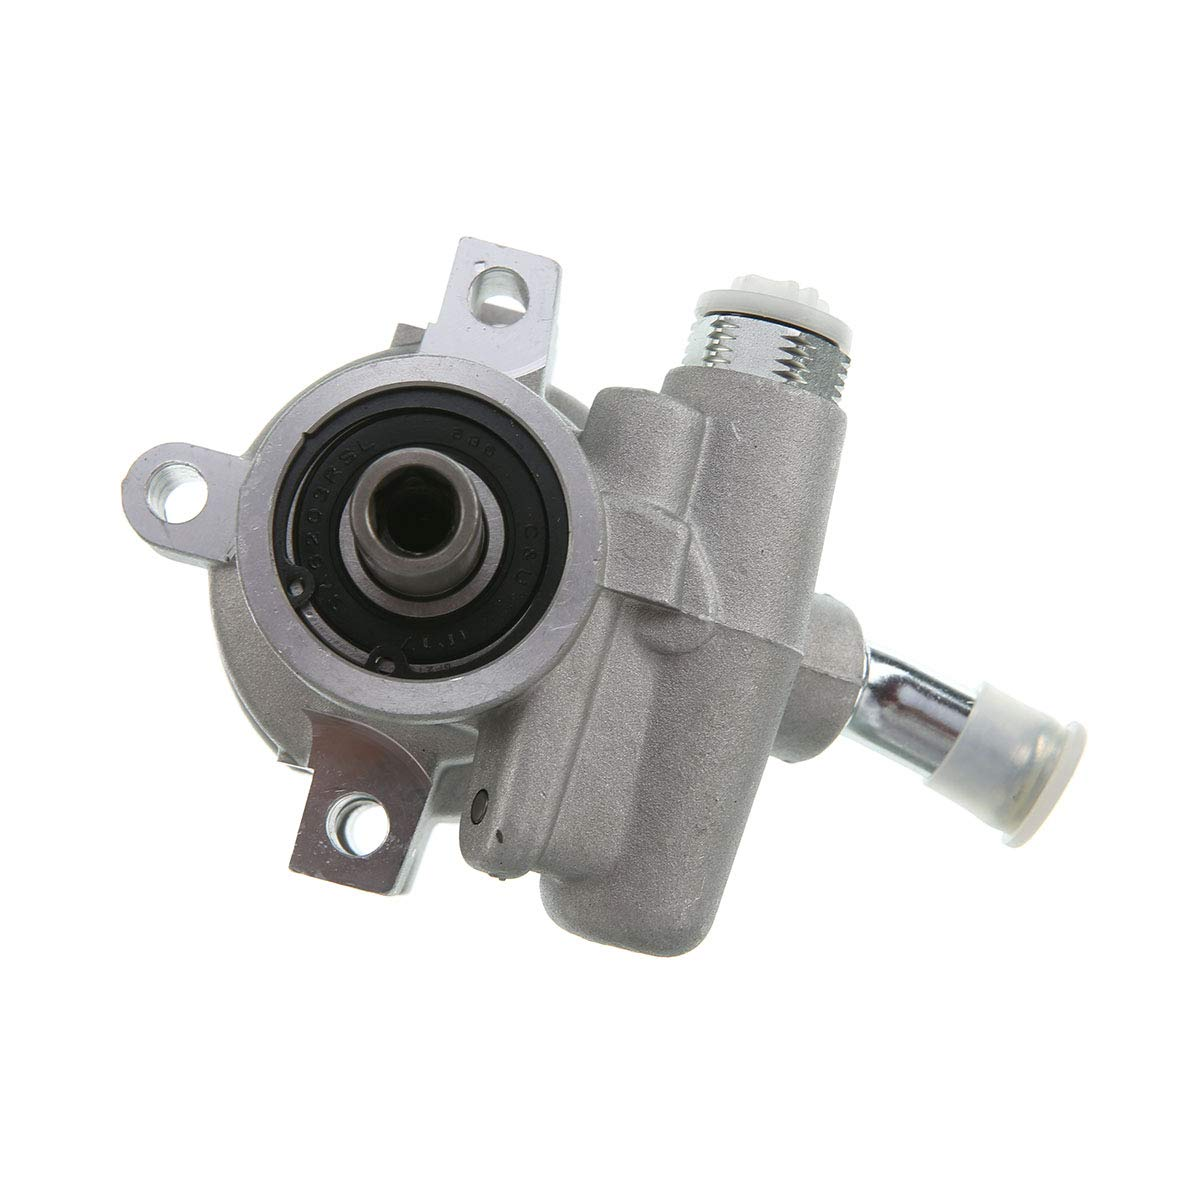 A-Premium Power Steering Pump Without Reservoir for Chevrolet C5 C6 Corvette 1997-2013